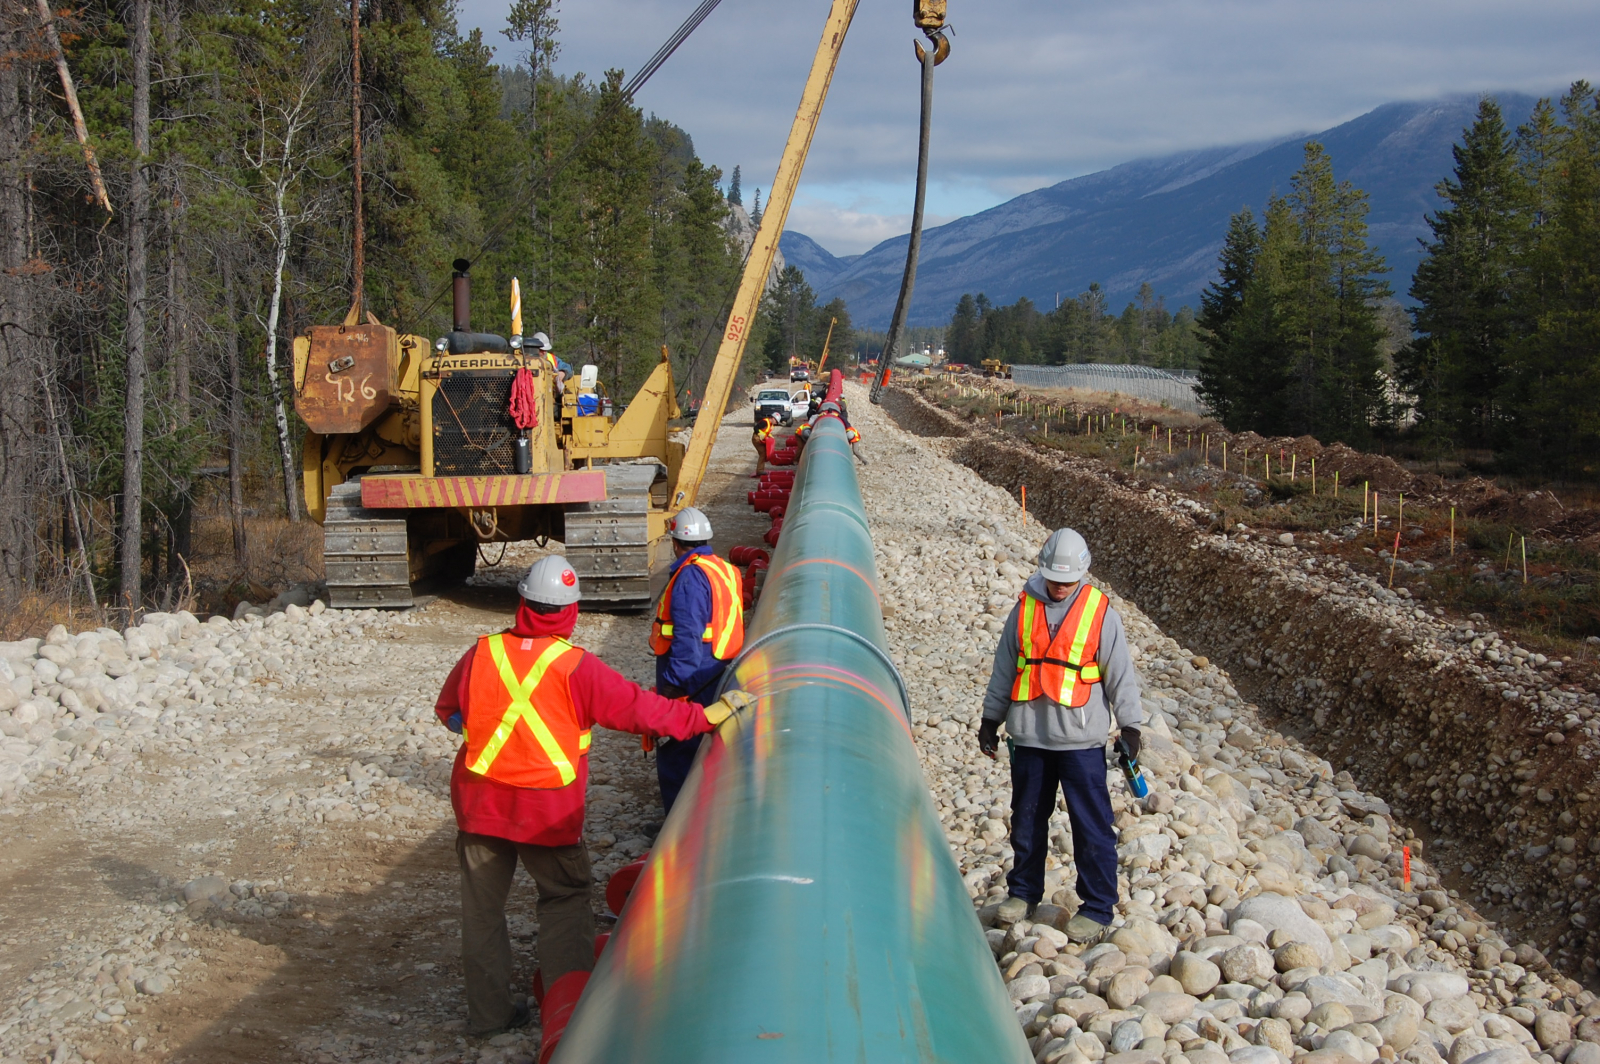 Kinder Morgan Trans Mountain Pipeline Expansion construction - company photo